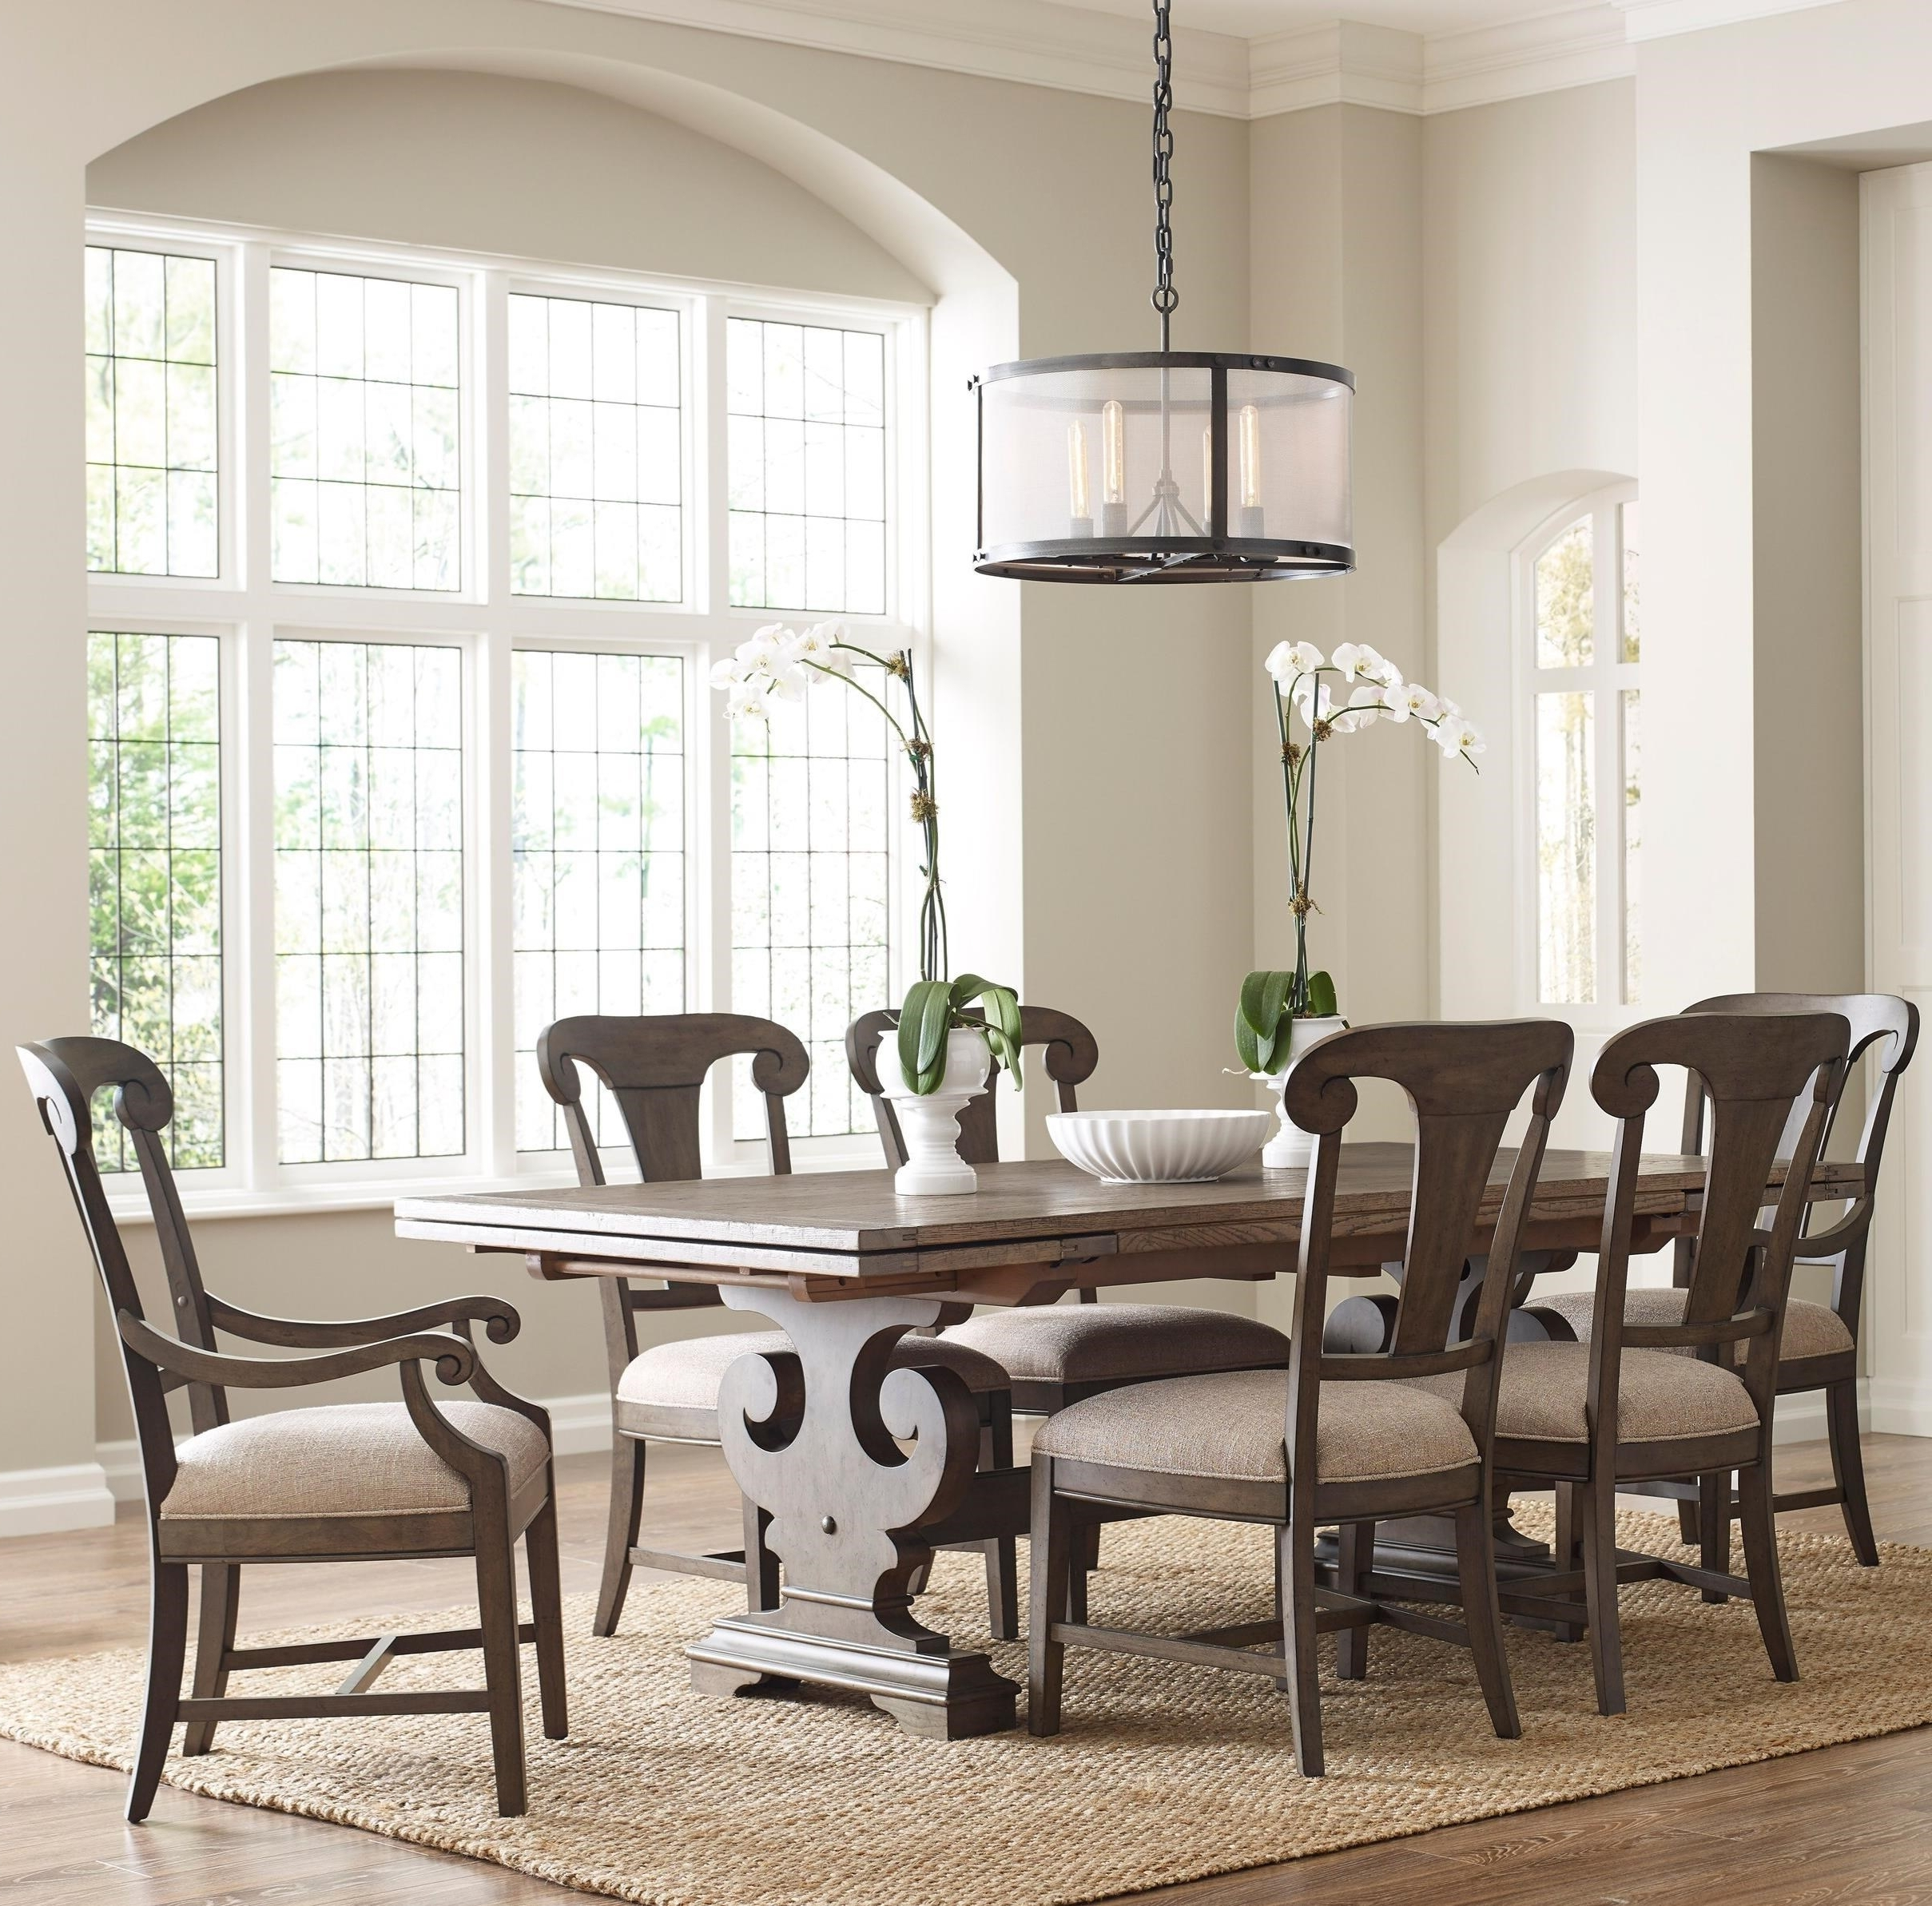 Crawford 7 Piece Rectangle Dining Sets With Regard To Latest Seven Piece Dining Set With Crawford Refectory Table And Fulton (View 9 of 25)